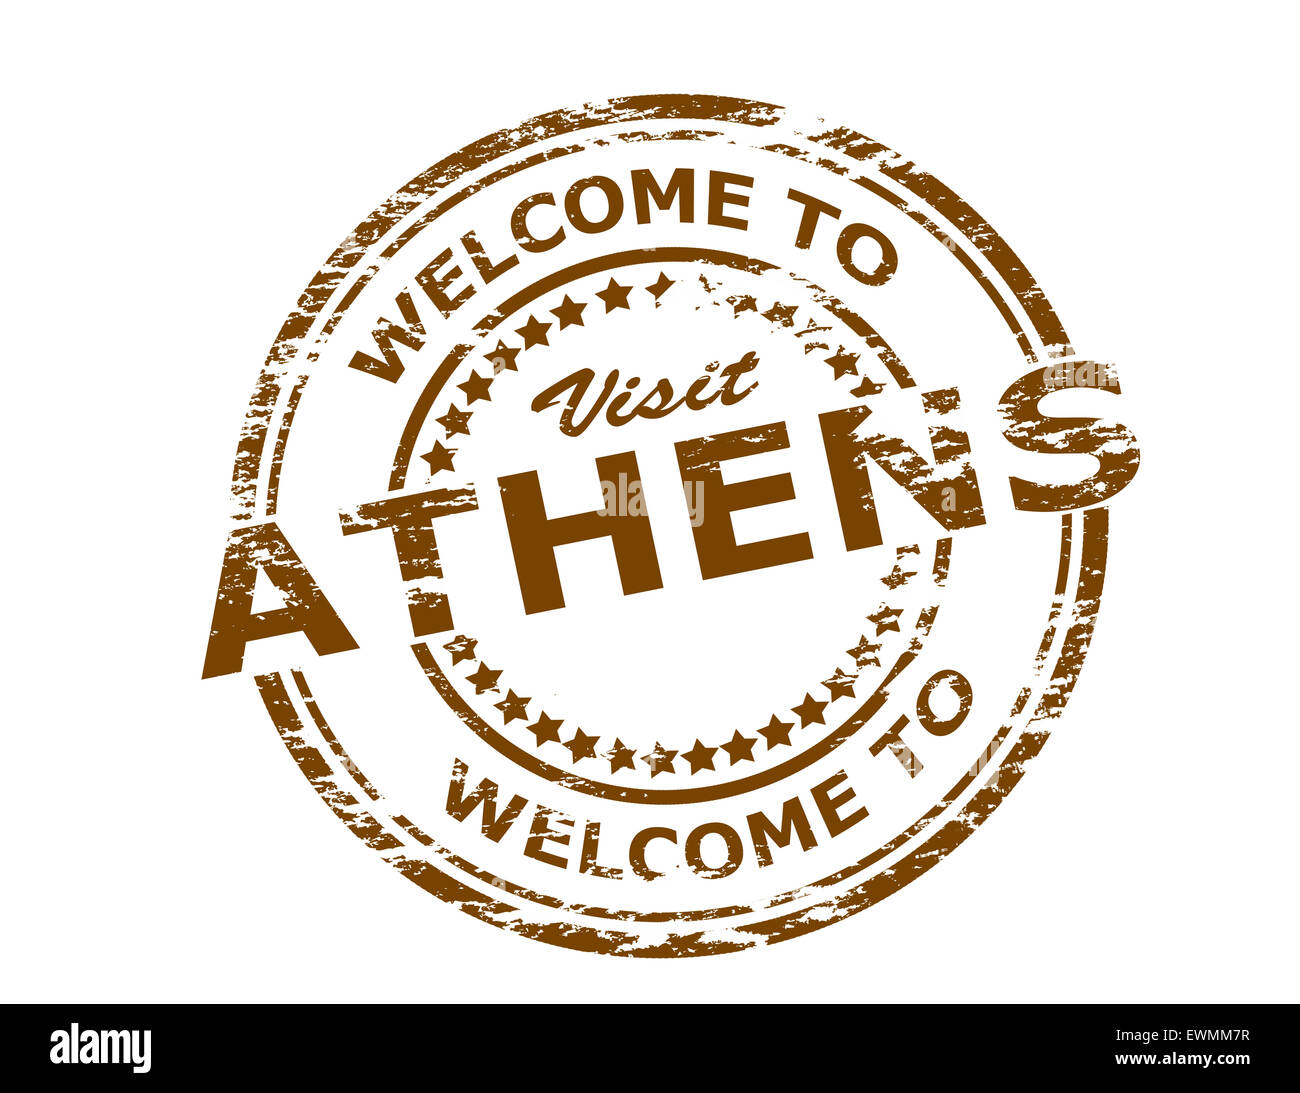 Rubber stamp with text welcome to athens inside illustration stock rubber stamp with text welcome to athens inside illustration buycottarizona Gallery